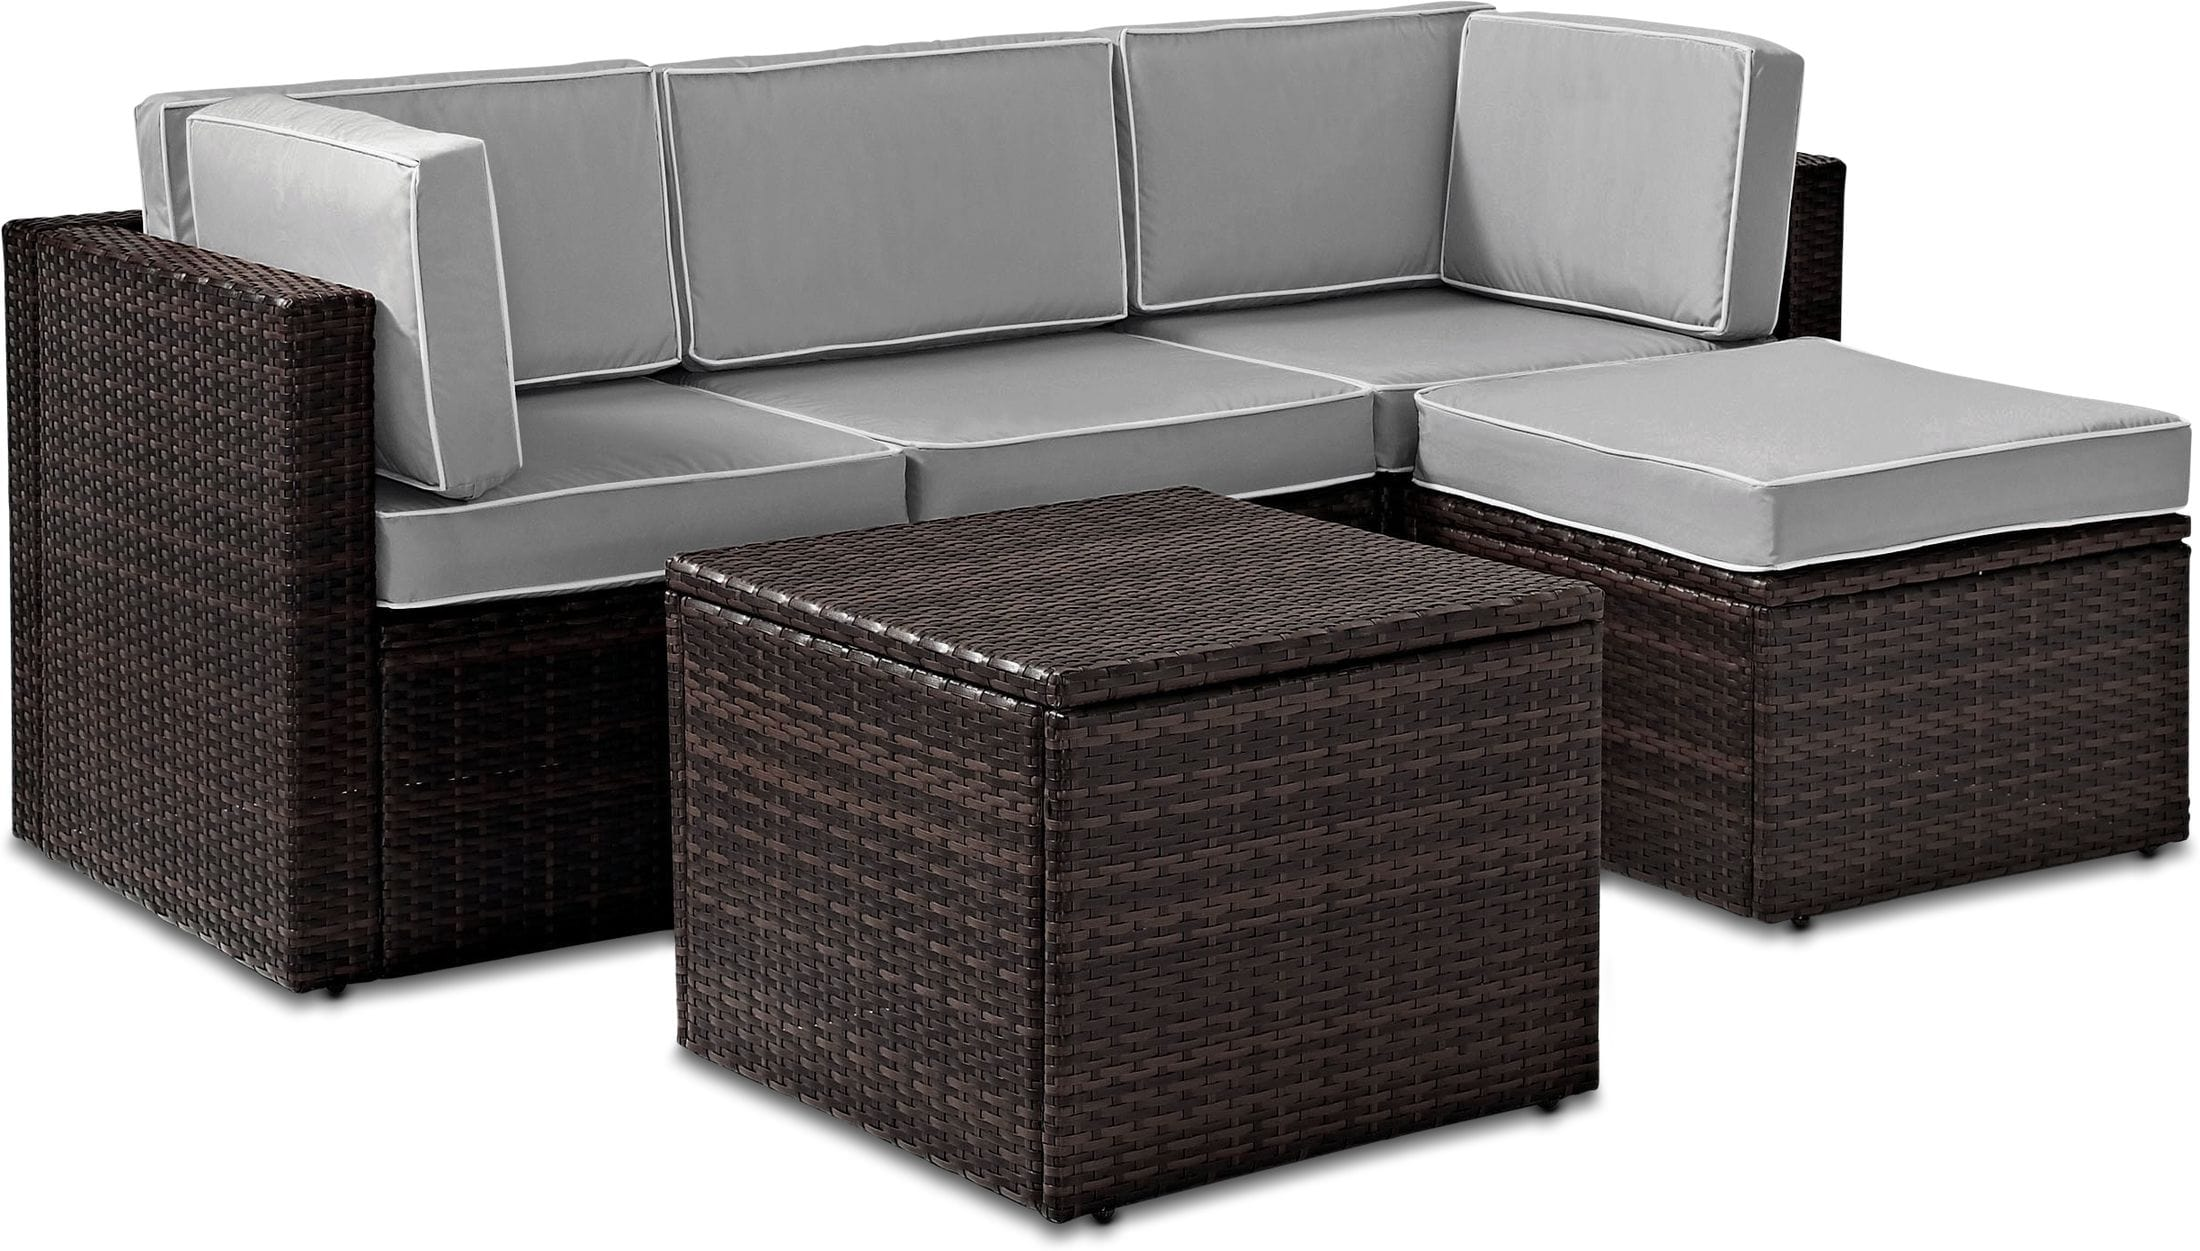 Outdoor Furniture - Aldo Outdoor Sofa, Ottoman, and Coffee Table Set